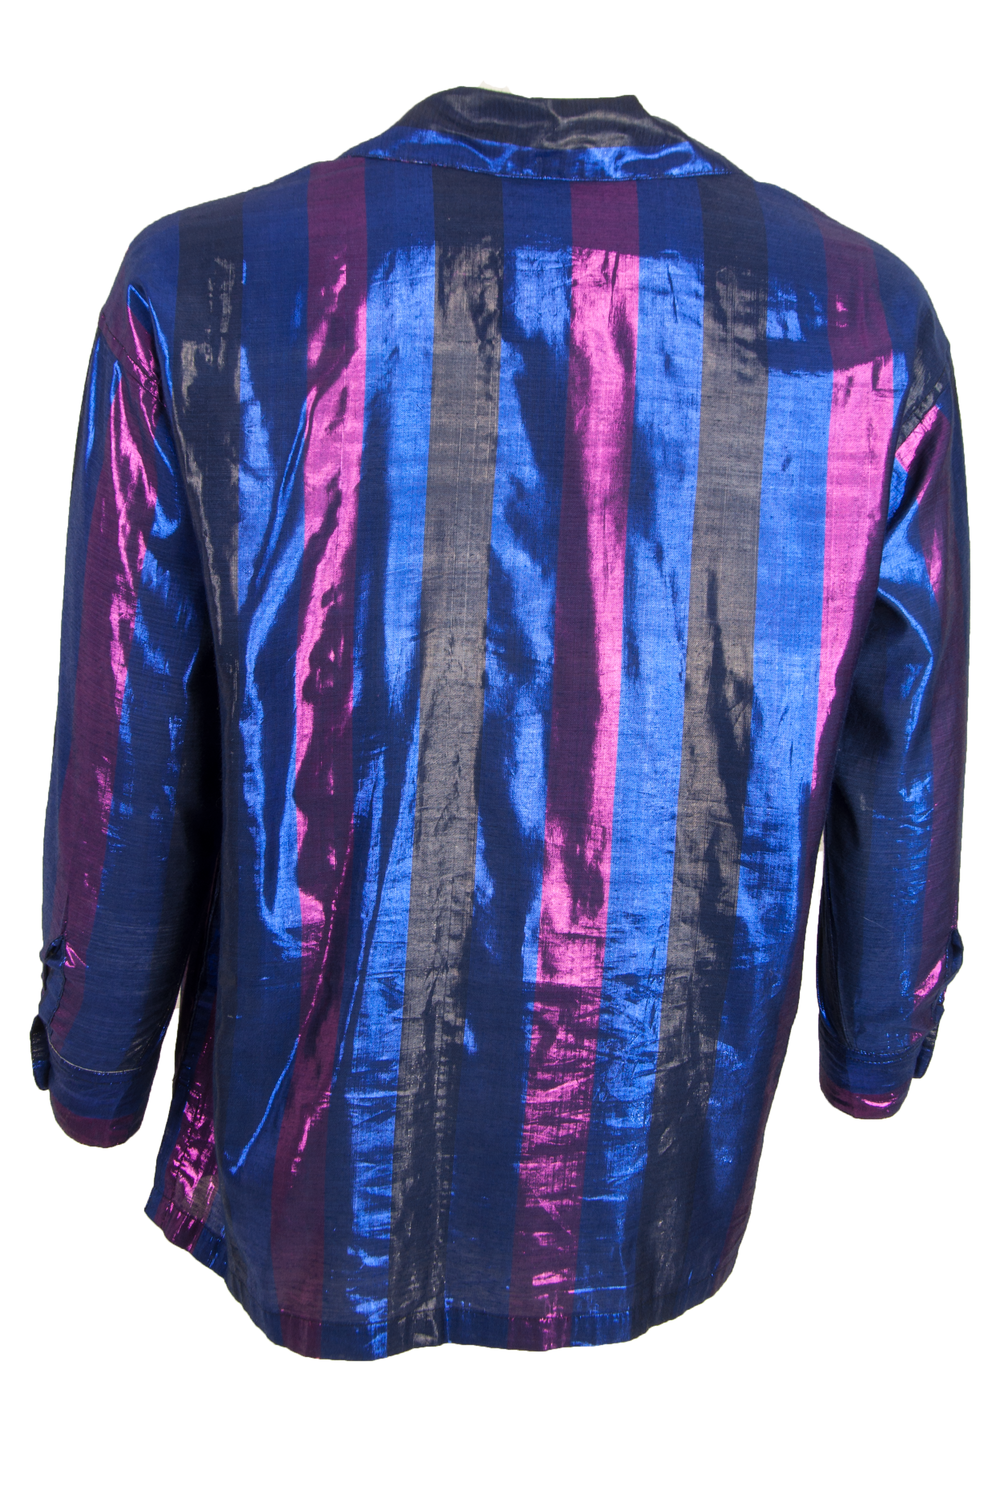 Vintage iridescent button up shirt with blue and pink stripes